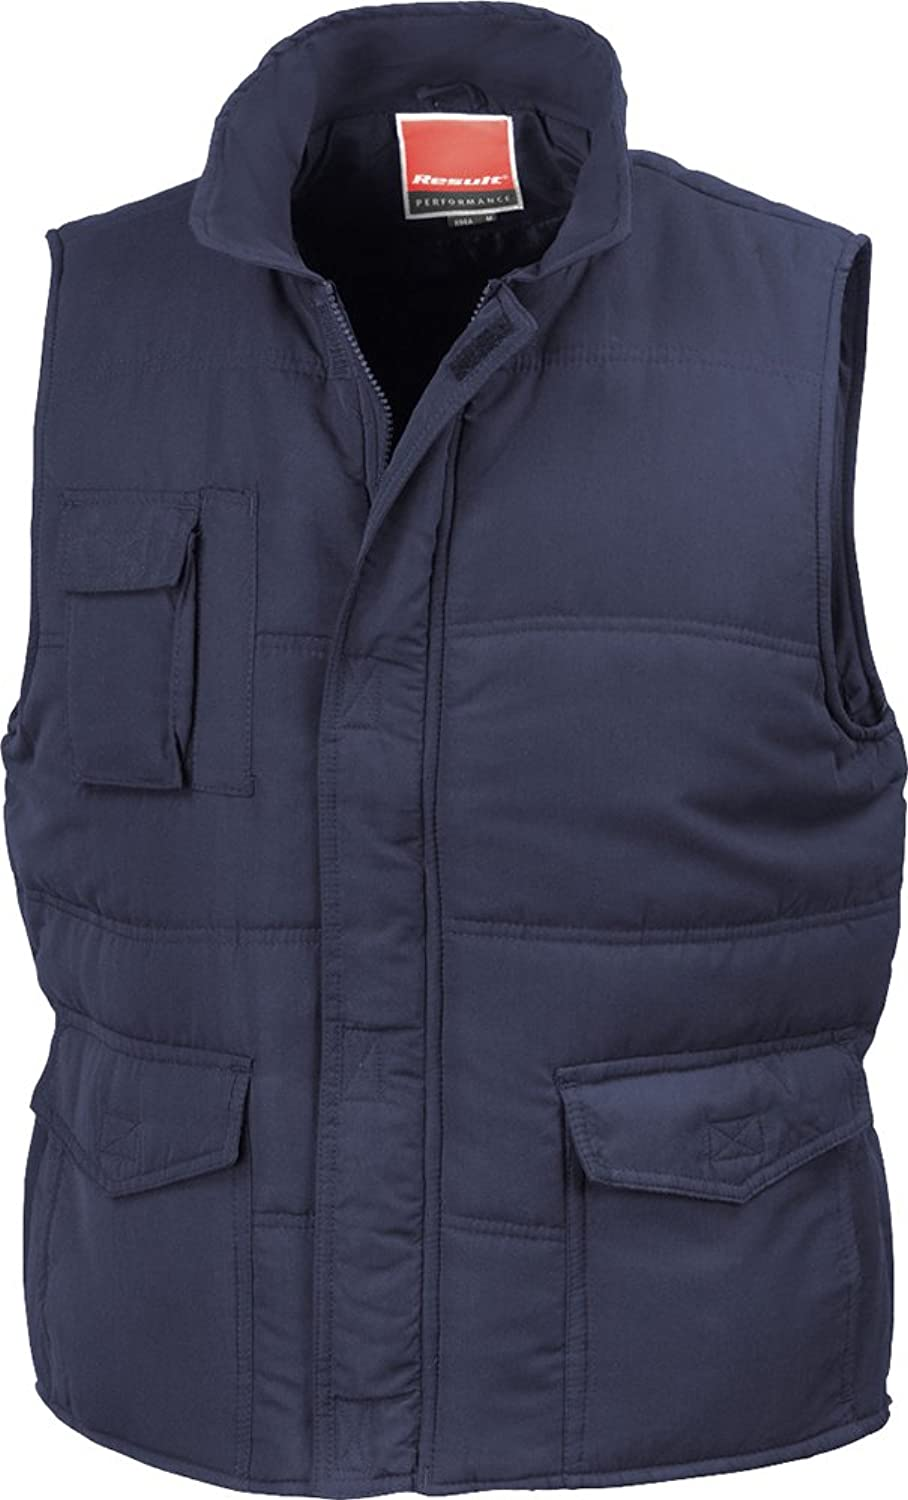 (4X-Large, Navy) - Result Promo Mid-Weight Bodywarmer